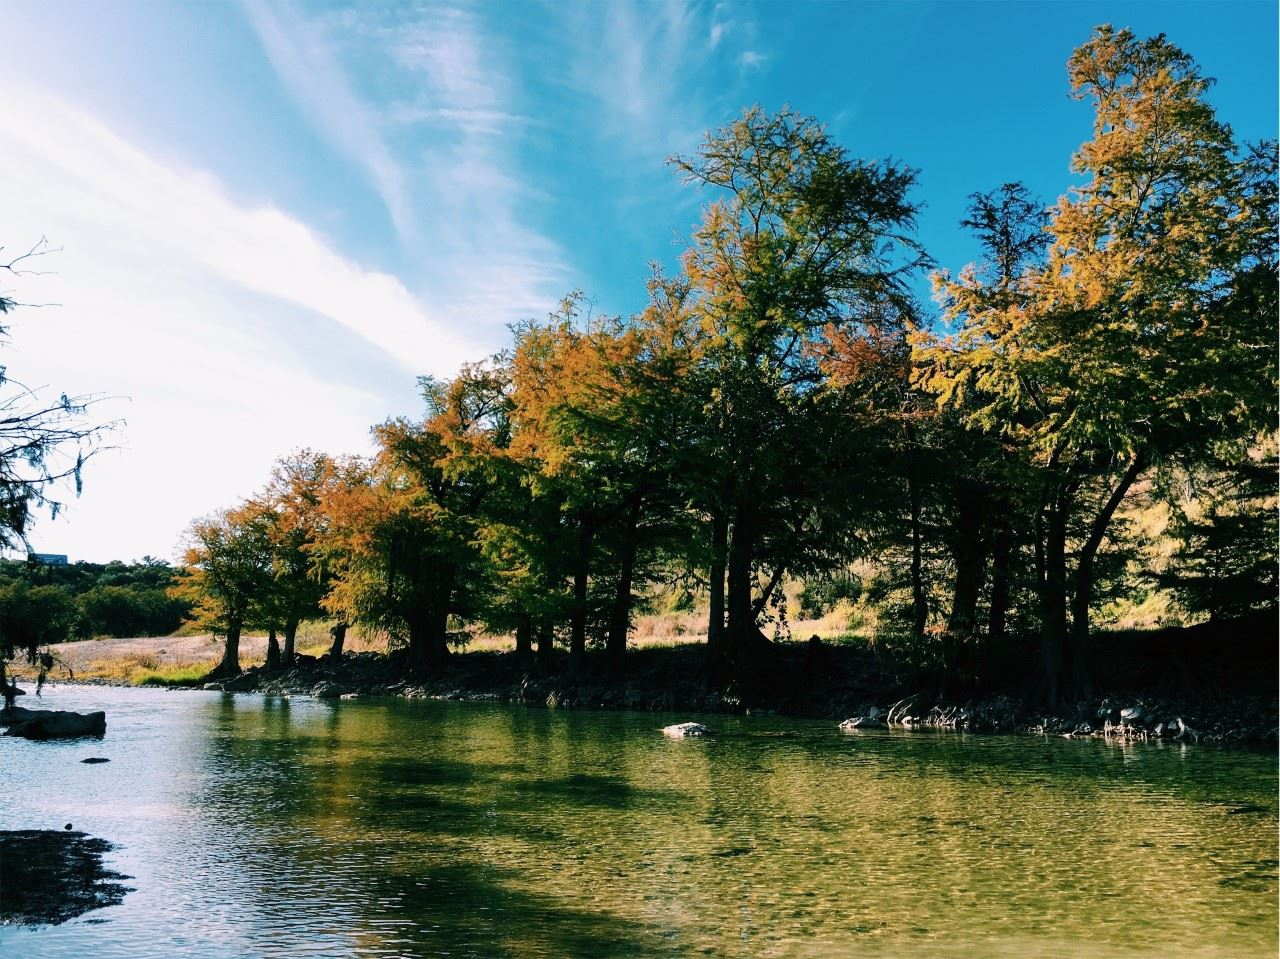 calm water with big trees on the banks of the river with blue skies